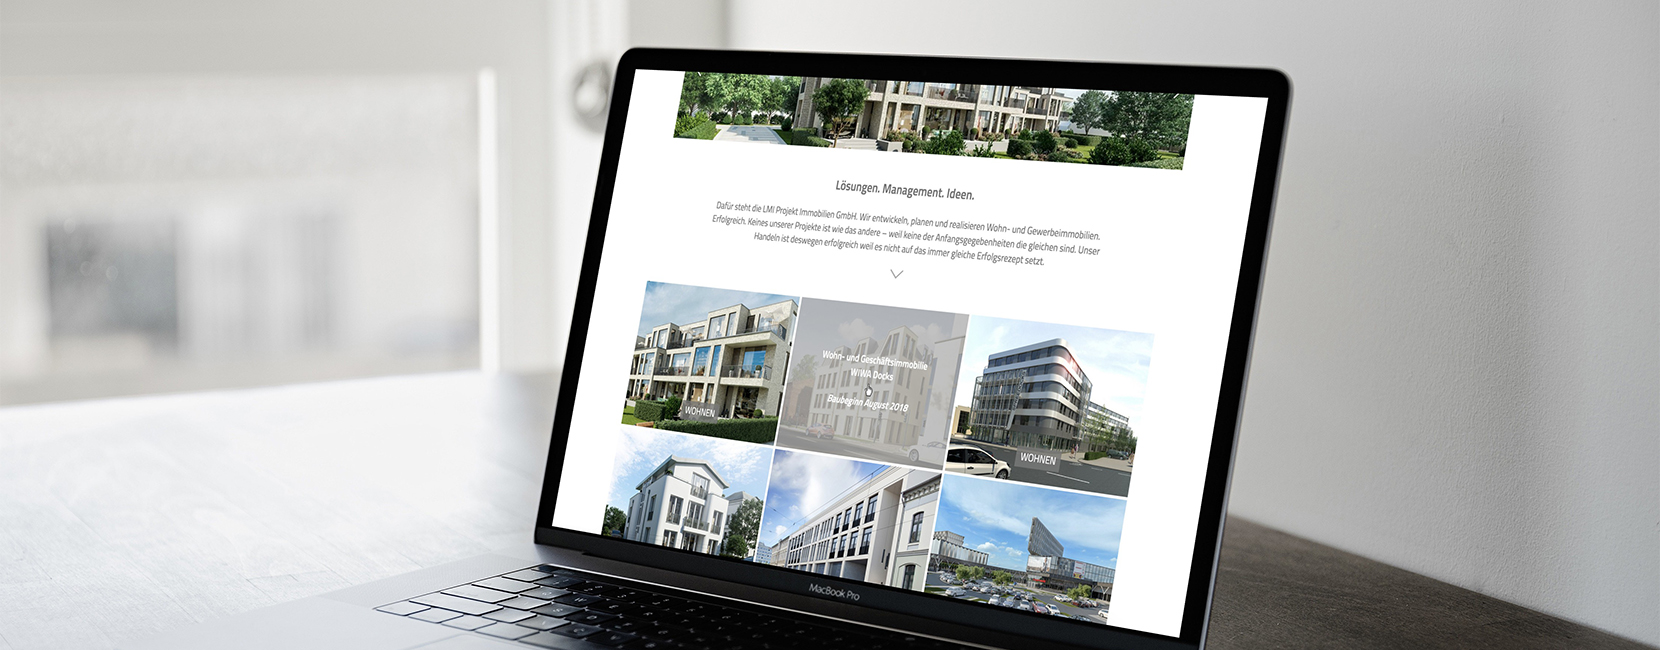 LMI Projekt Immobilien Website auf Laptop